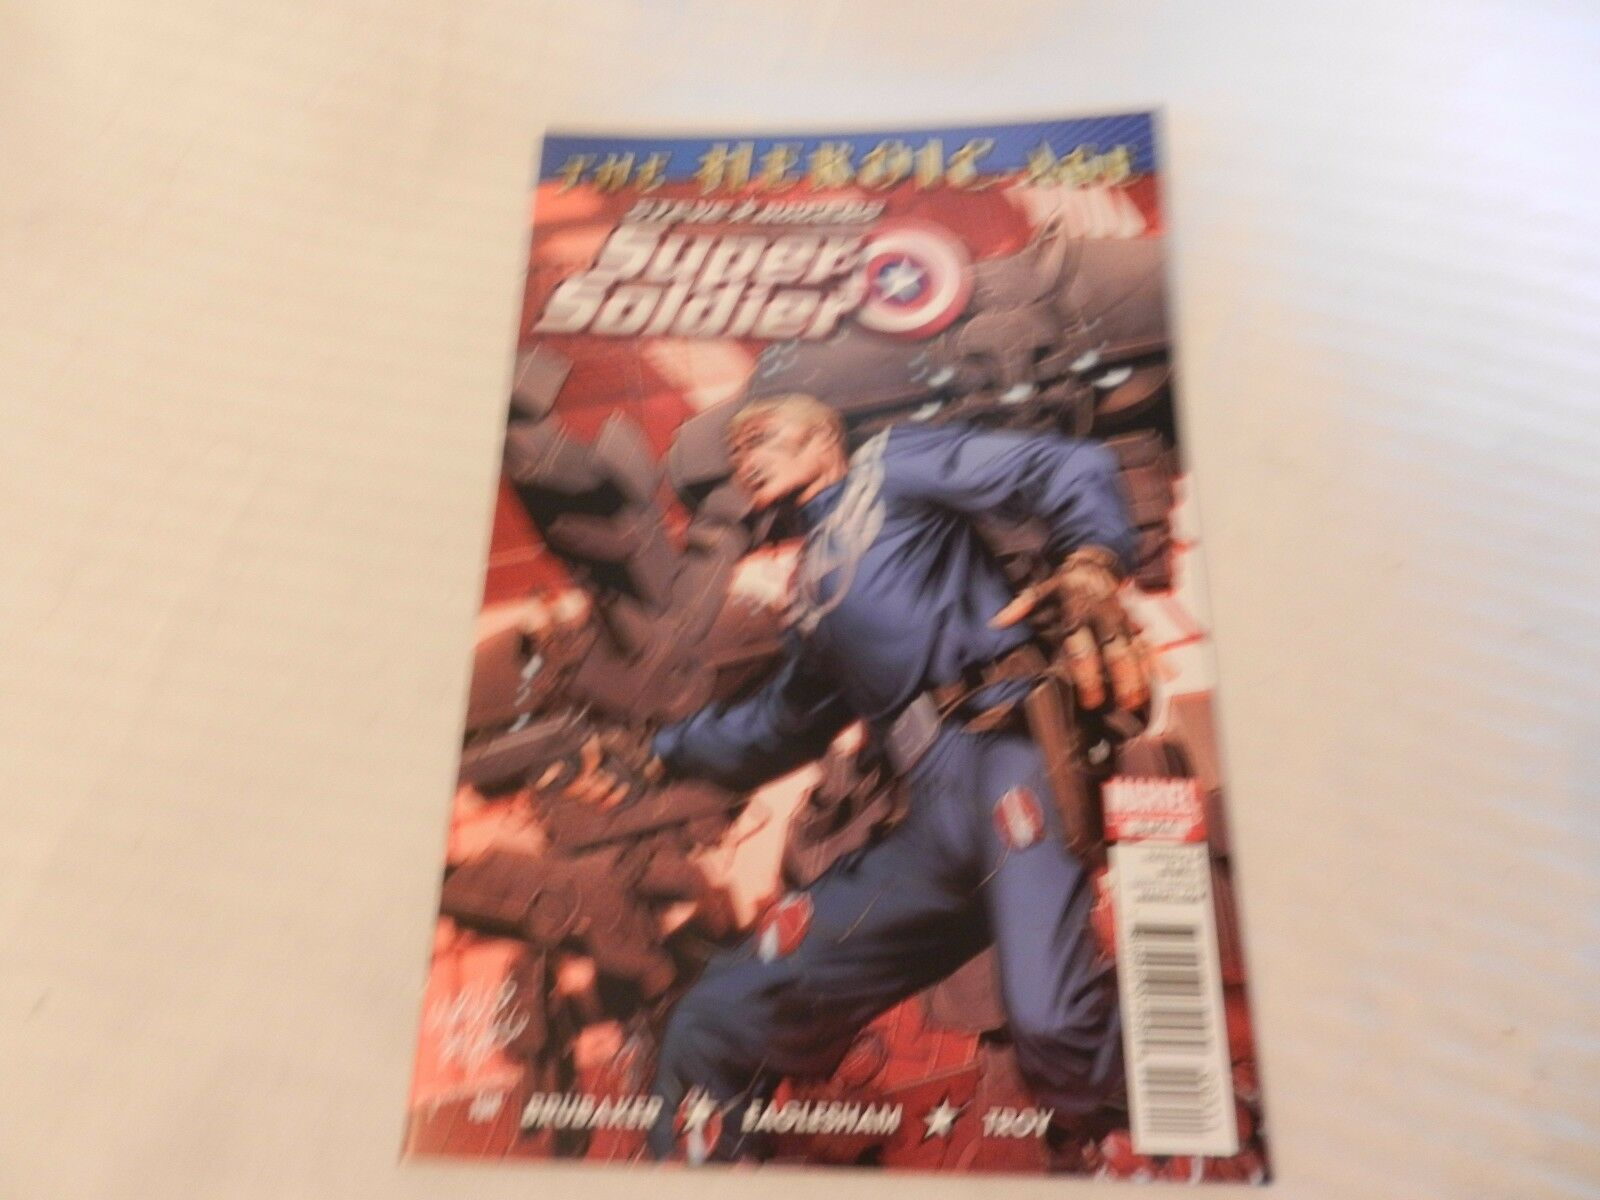 The Heroic Age Steve Rogers Super-Soldier Marvel Comics #3 November 2010